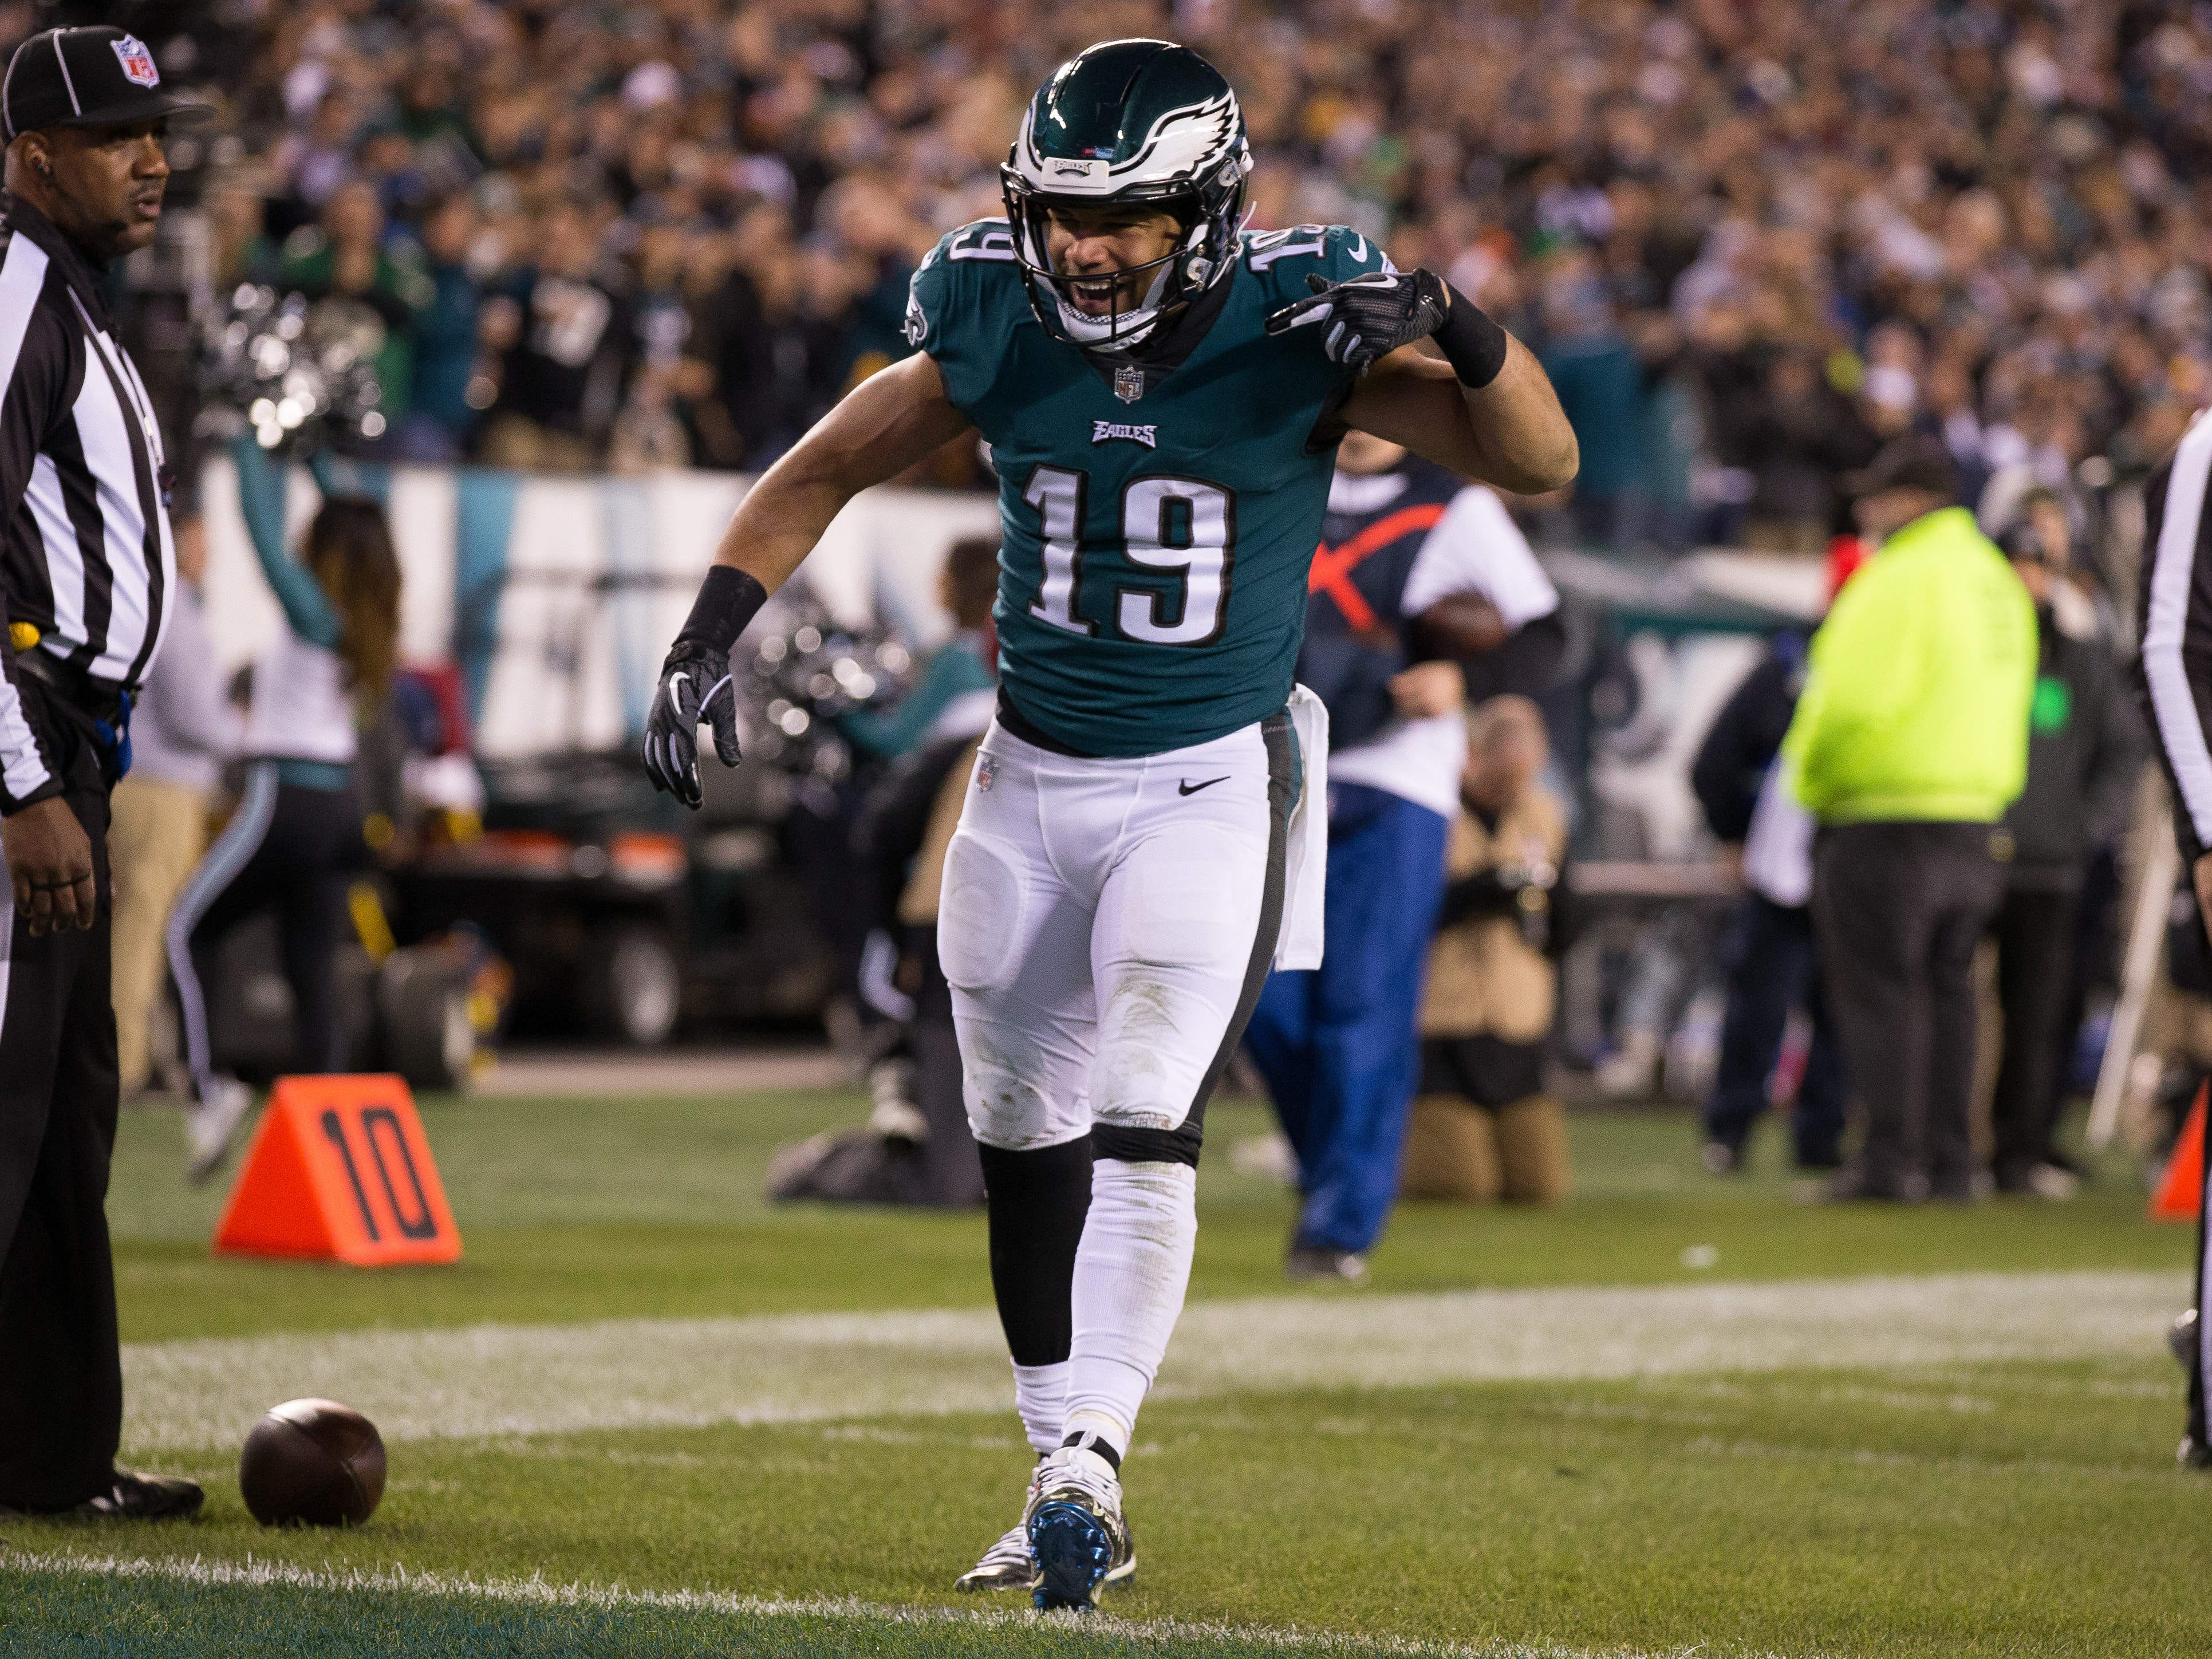 12. Golden Tate, WR, Eagles: Agreed to deal with Giants